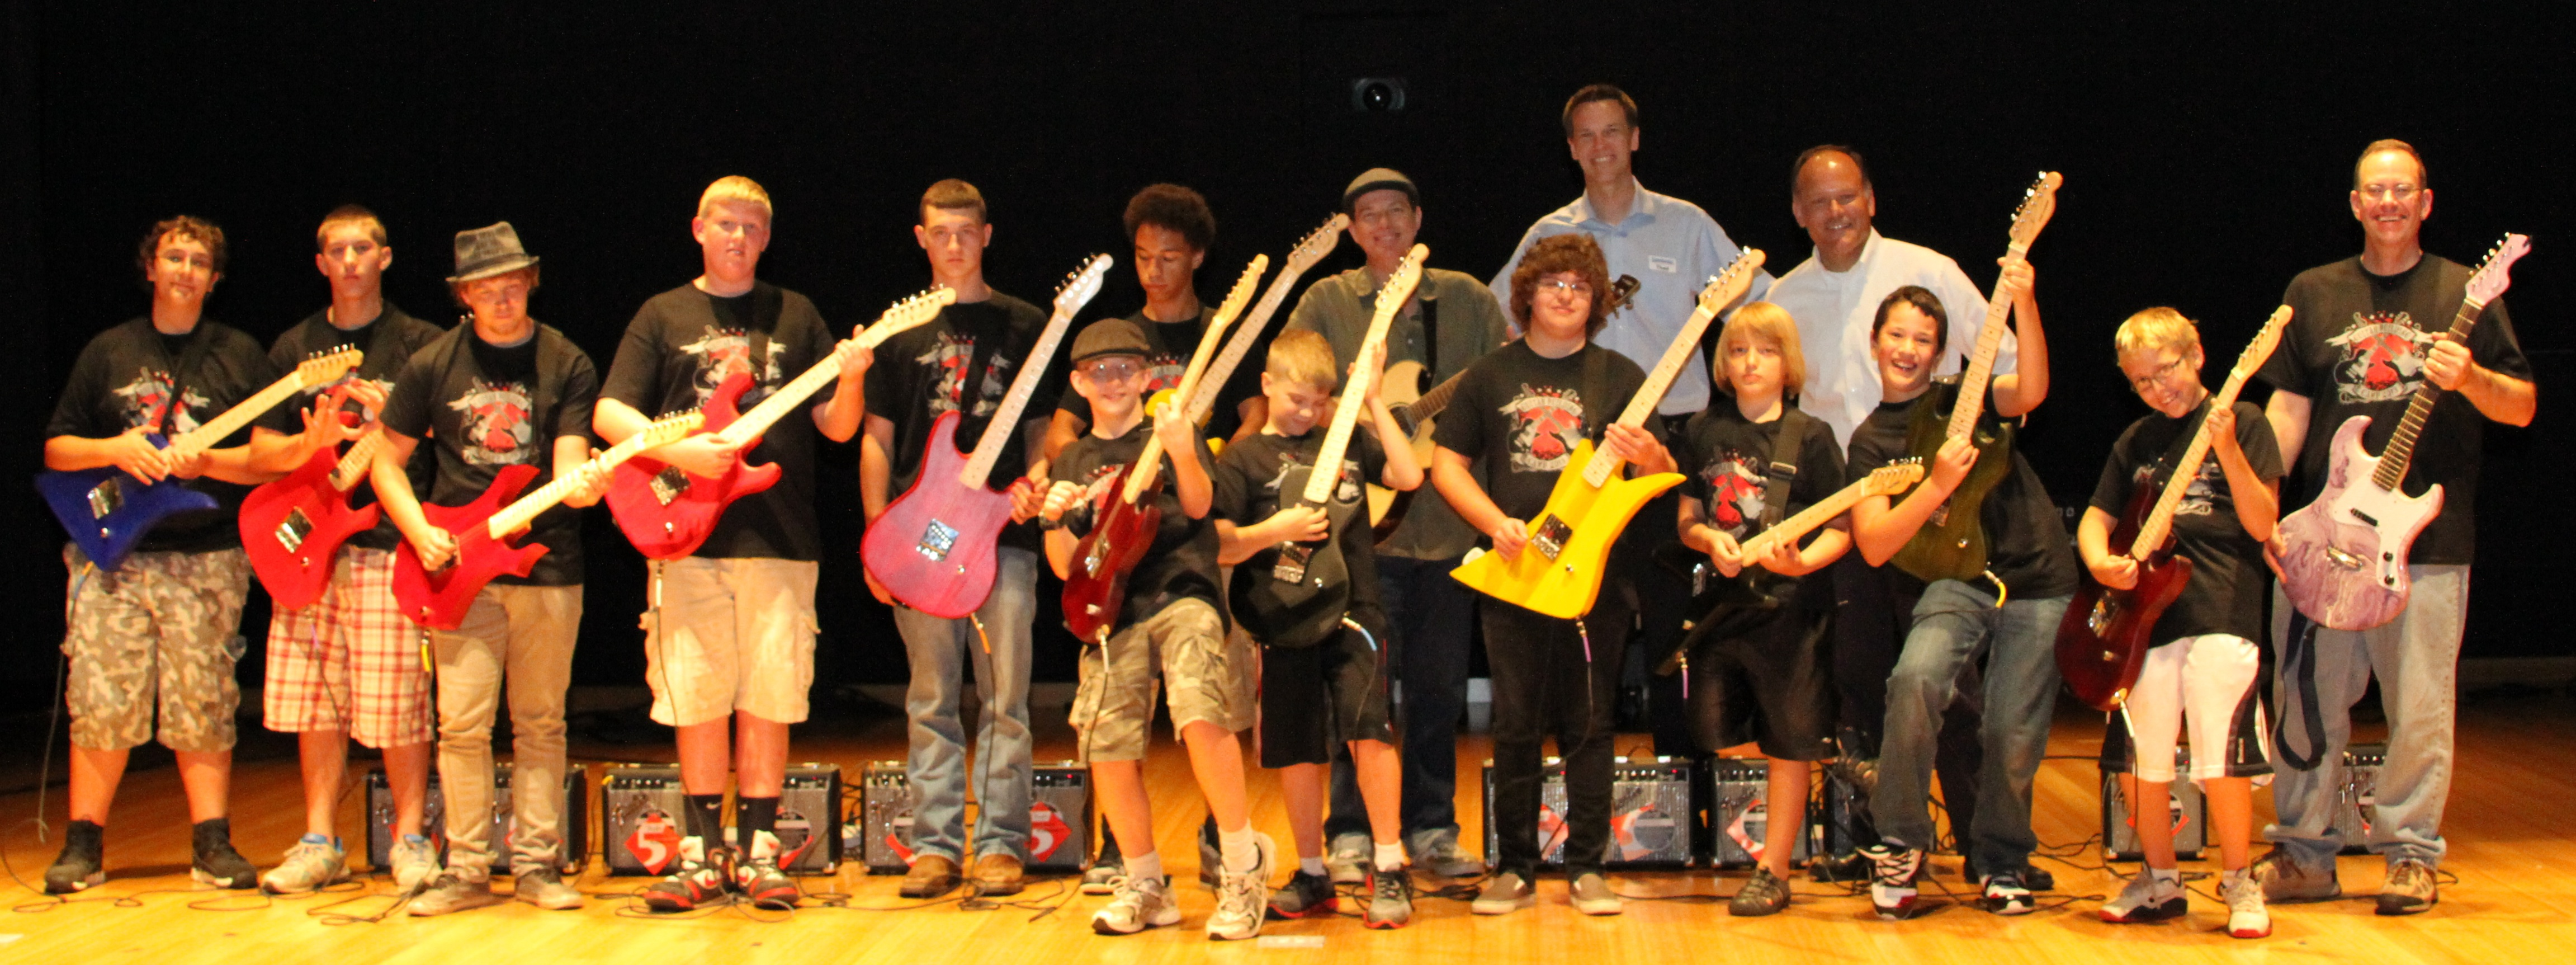 Budding Guitar Builders Visit Sweetwater